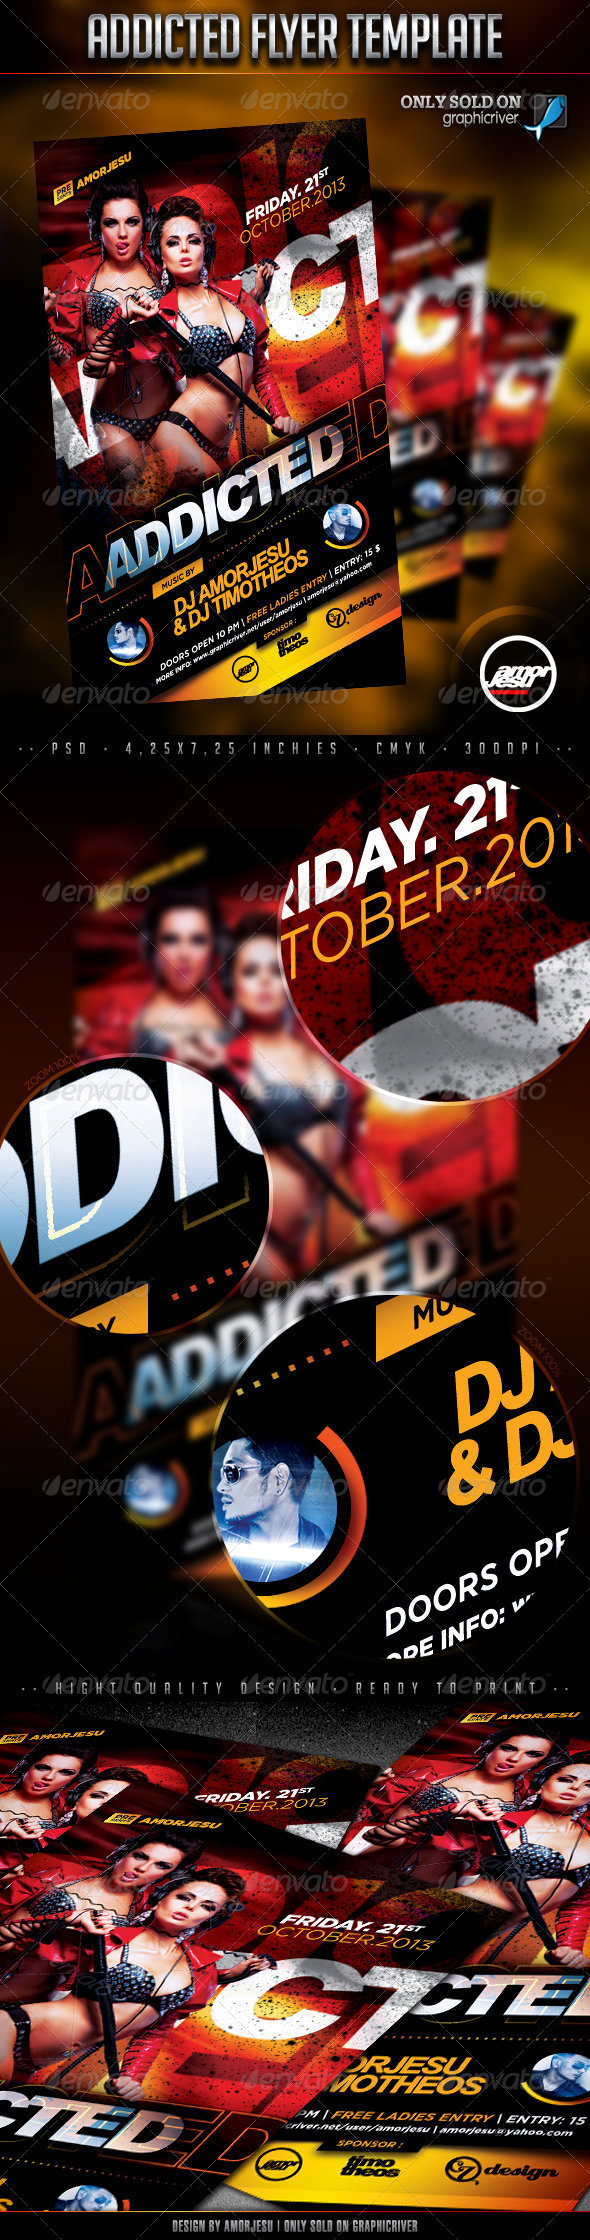 Addicted Flyer Template - Clubs & Parties Events